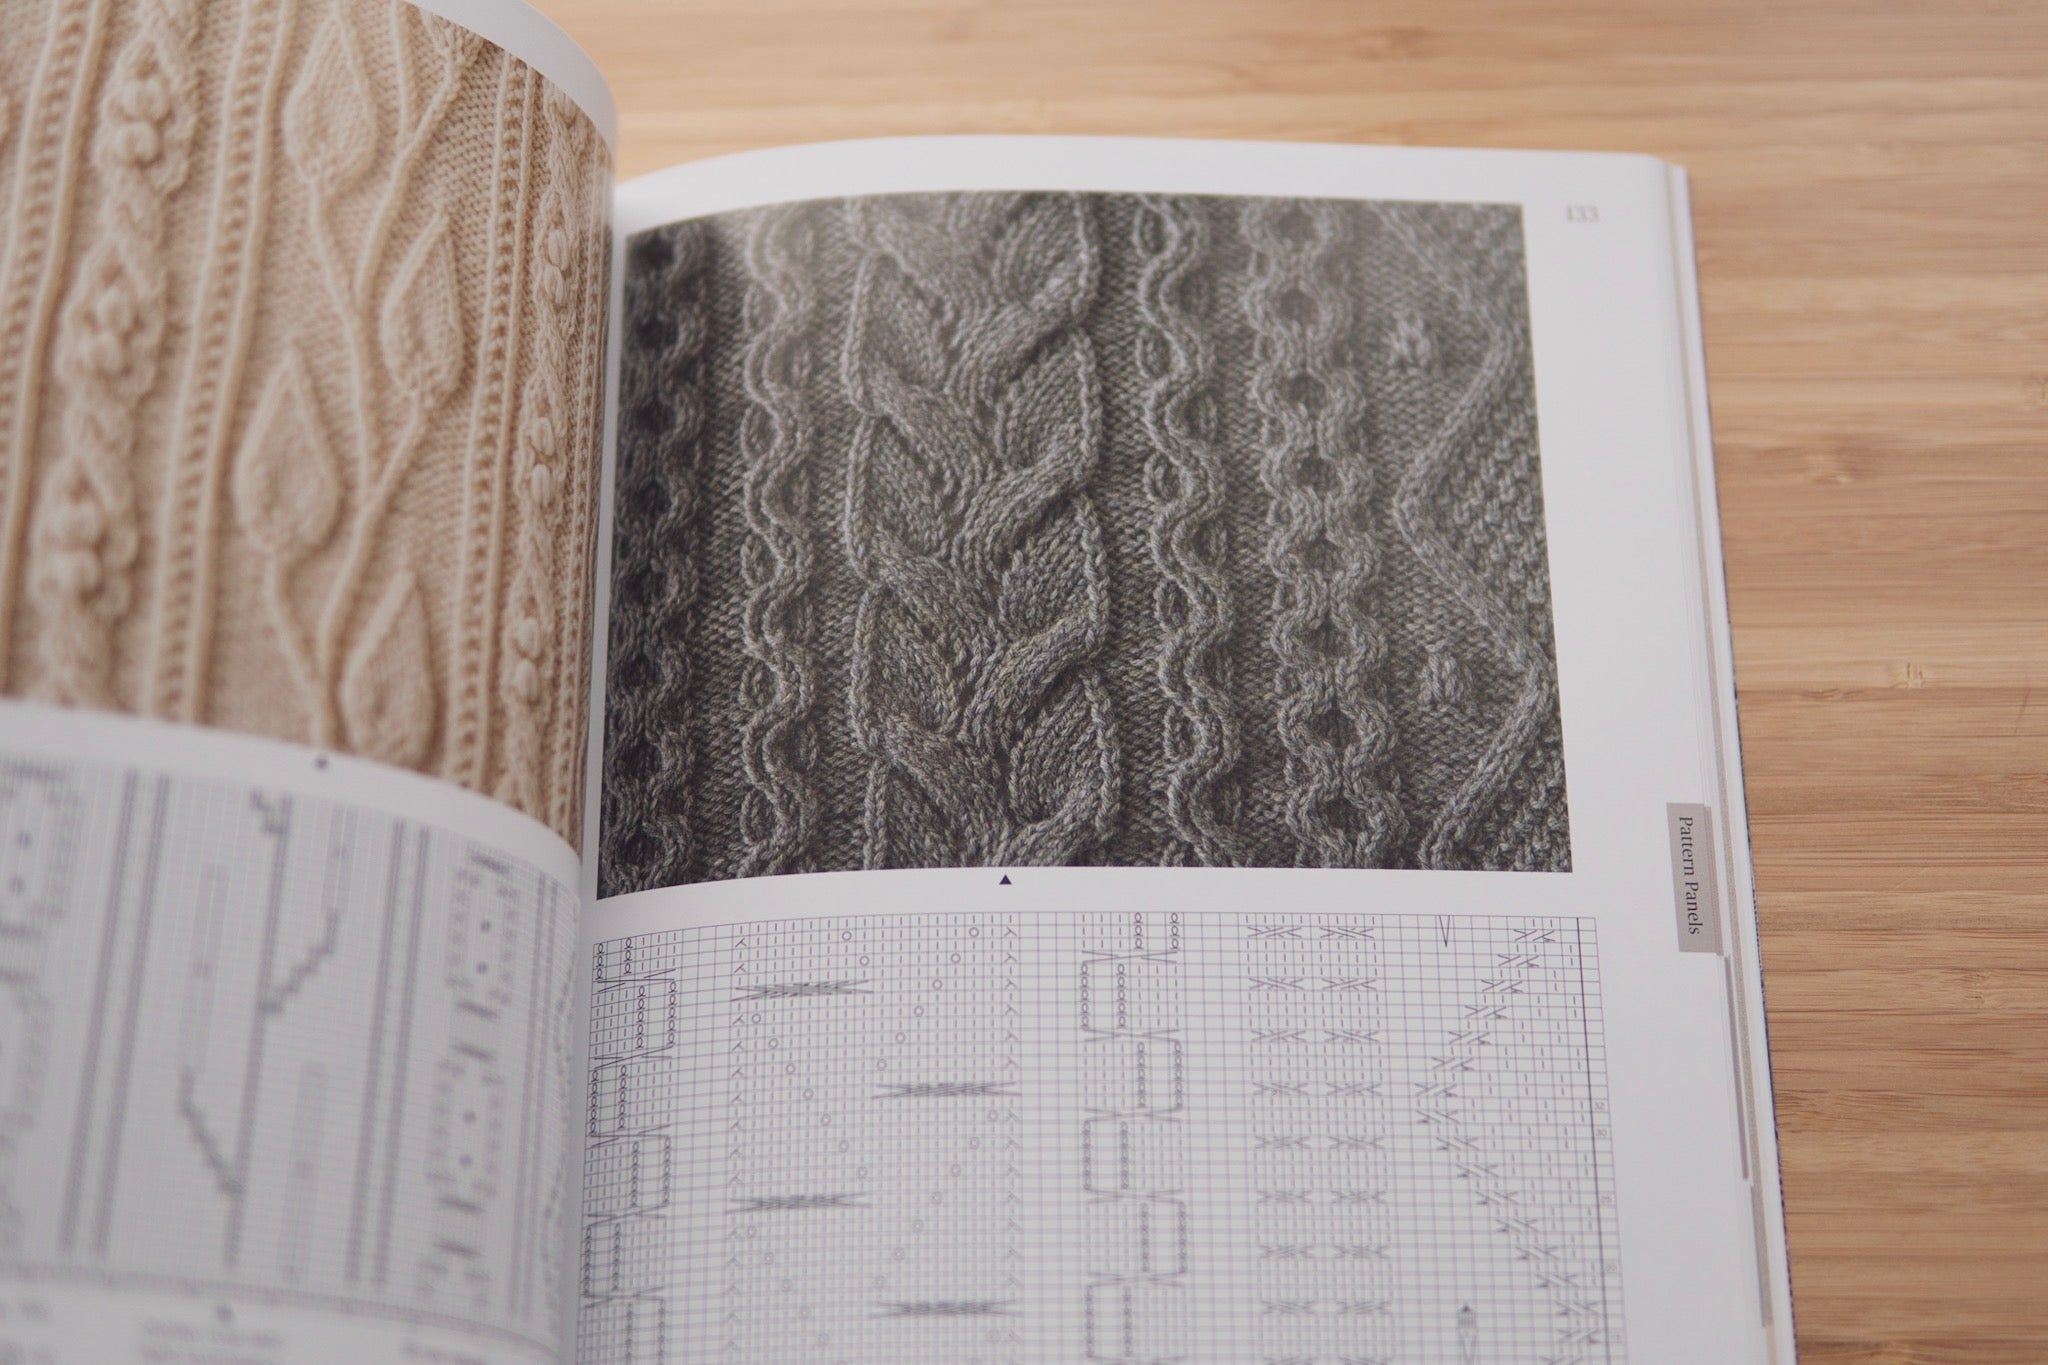 Panel knitting stitch